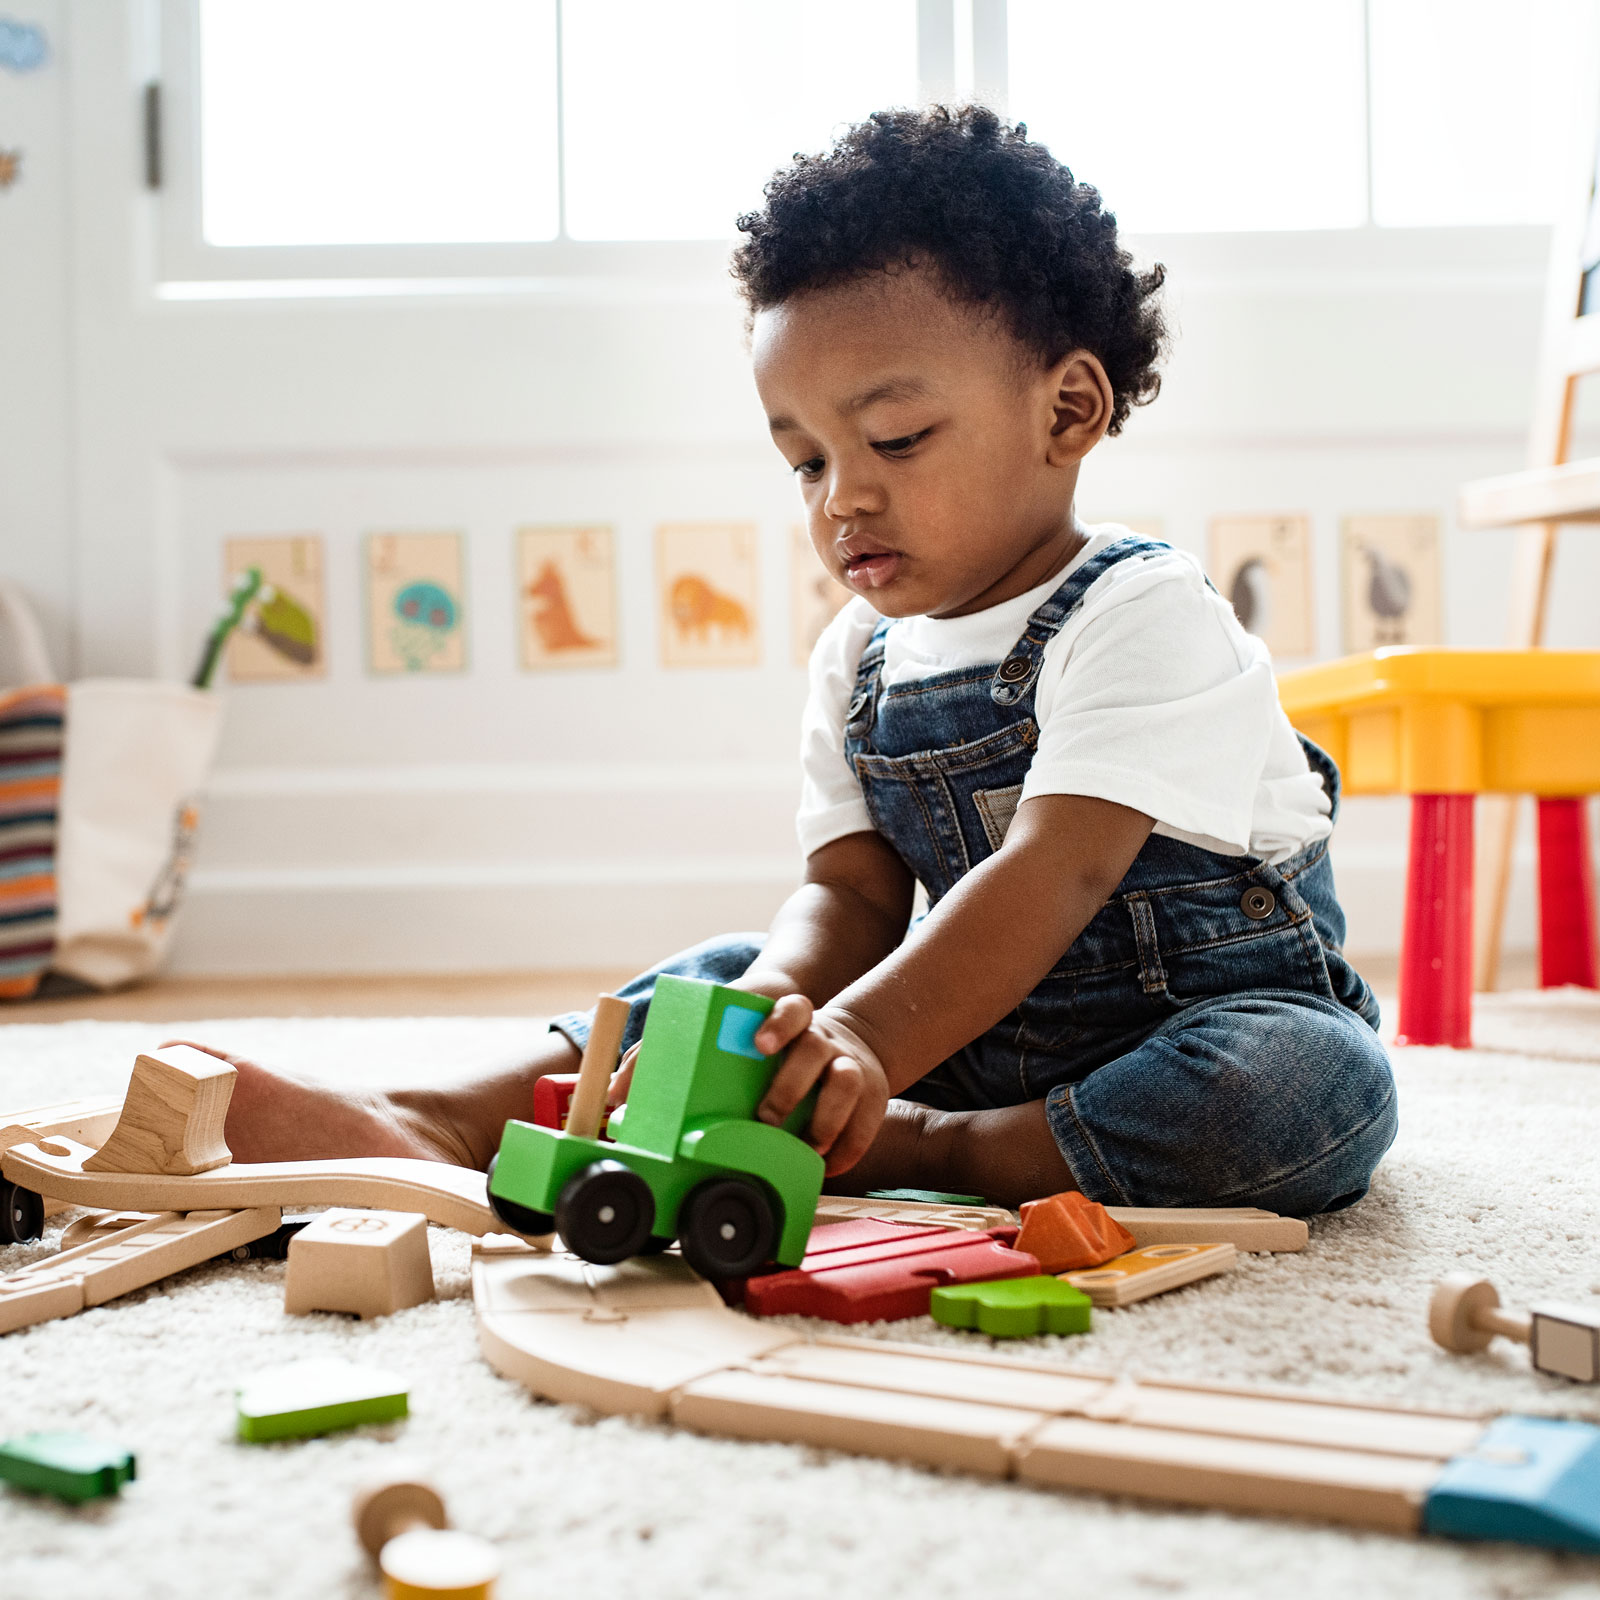 a toddler wearing overalls sits on the floor playing with wooden trains